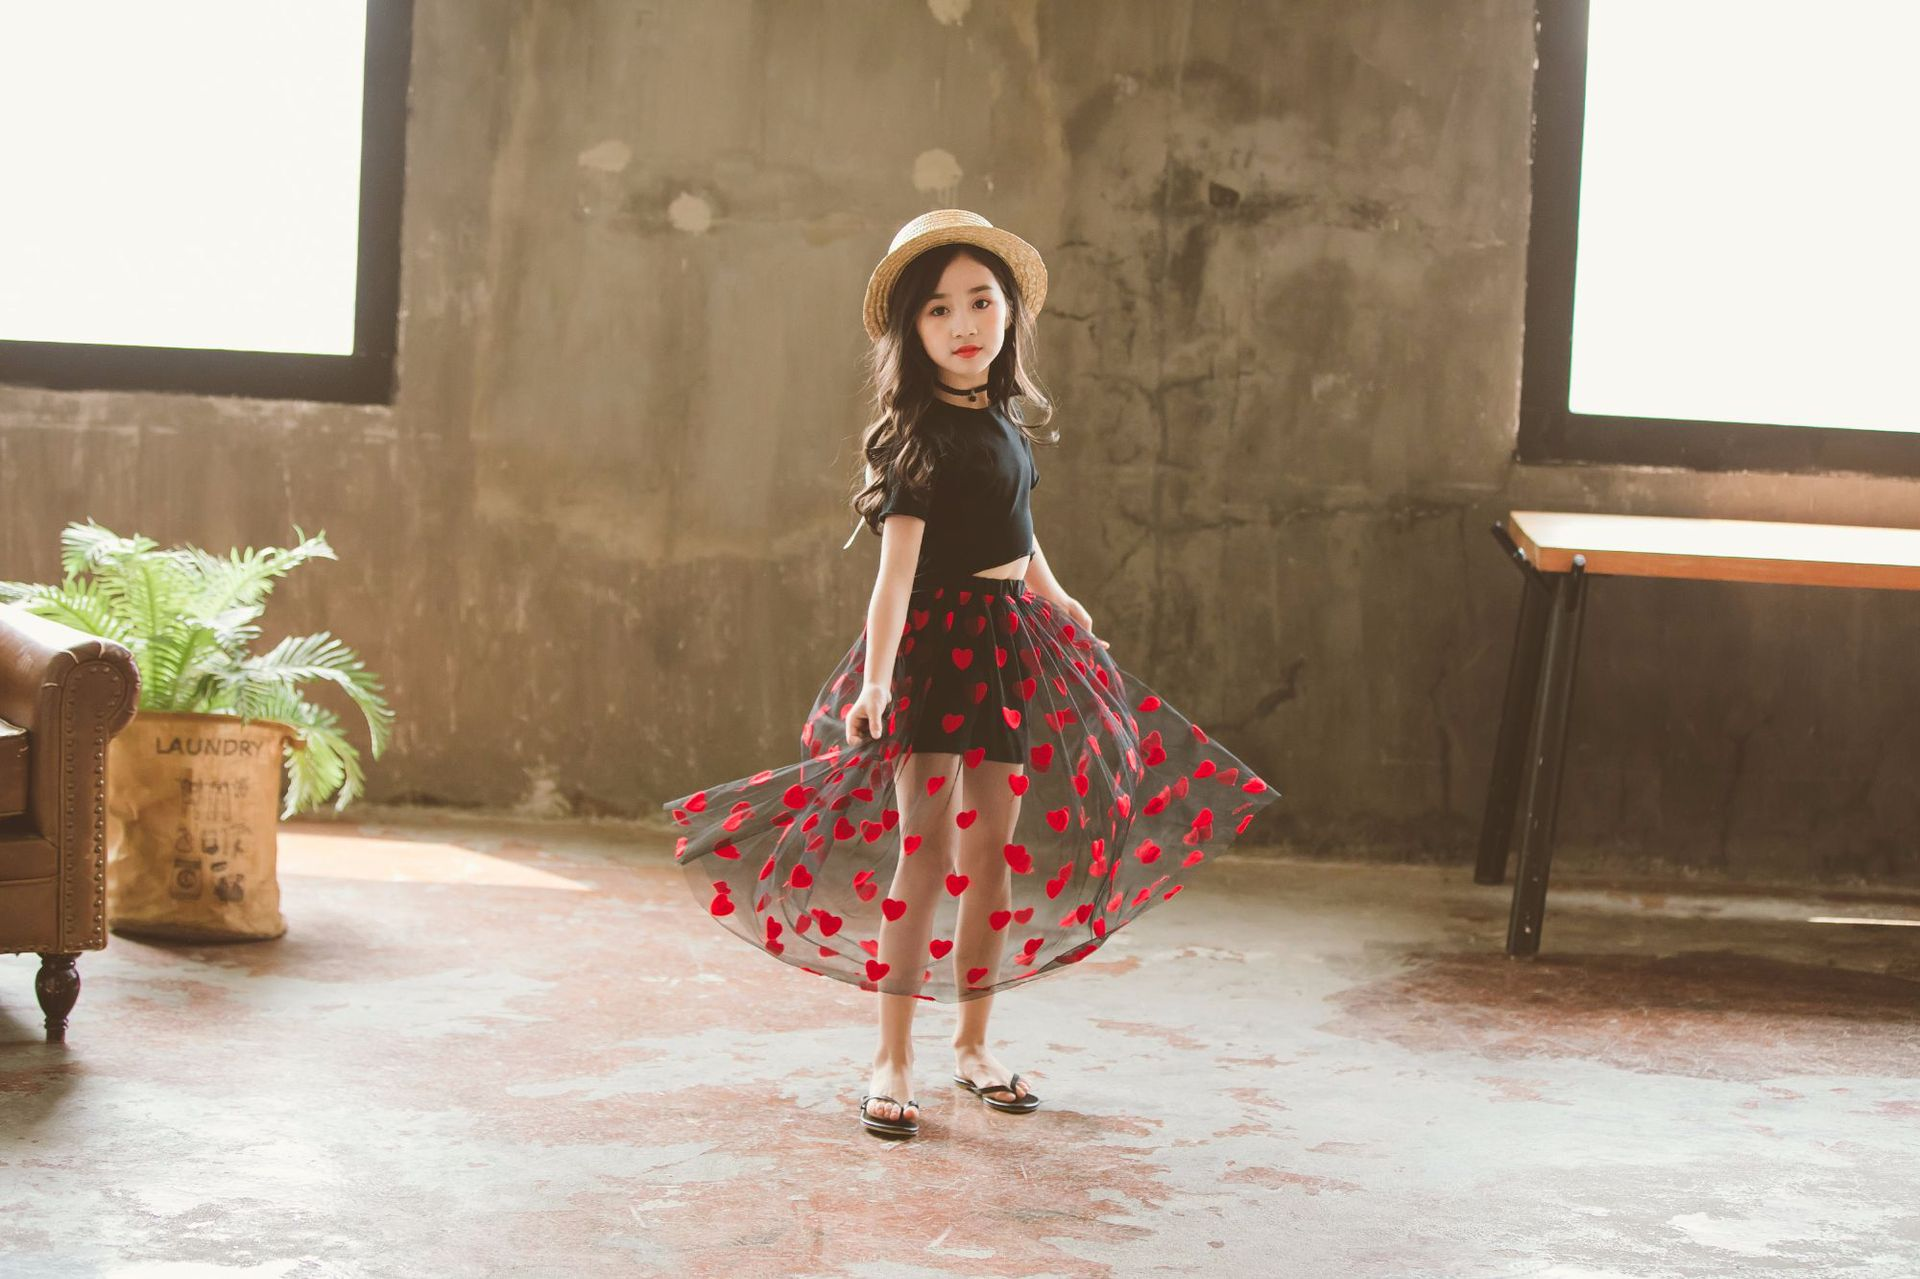 Baby Kids Girls Clothes Set Summer Outfit Cotton Tops Long Heart Mesh Tutu Skirts Teens Girl Clothing Sets For 4 6 8 10 12 14 Yr